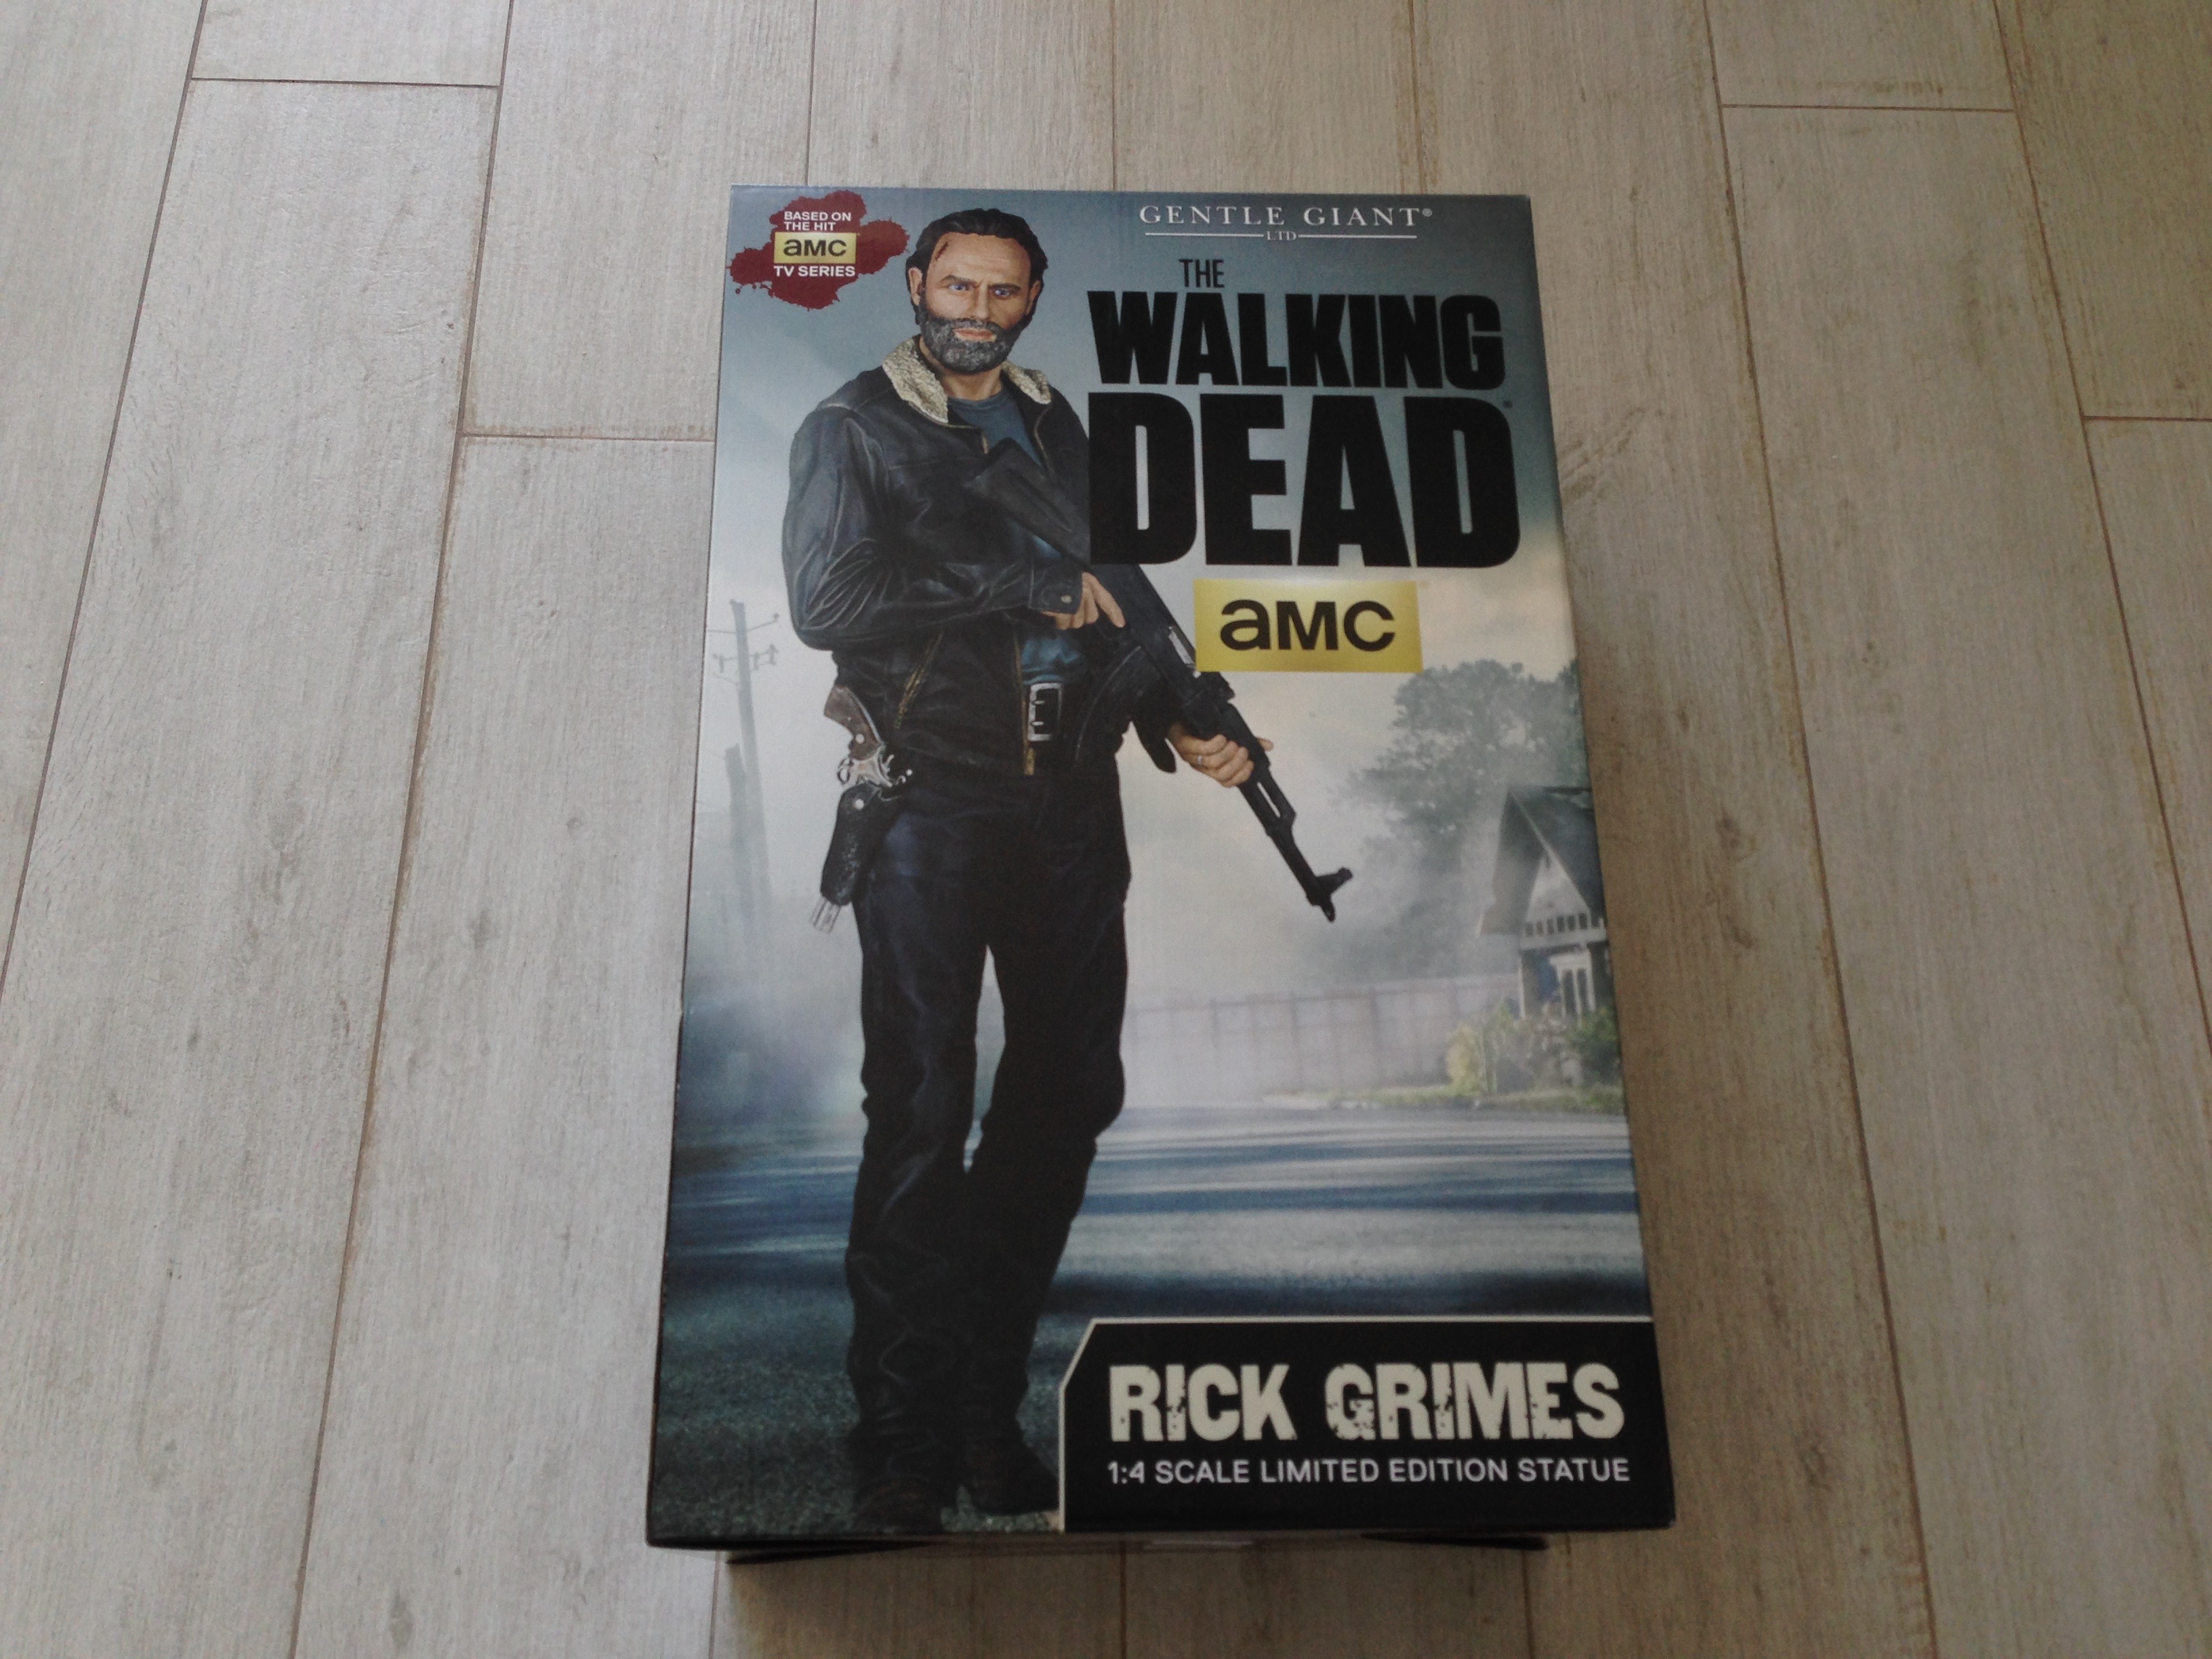 gentle-giant-the-walking-dead-rick-grimes-statue-toyslife-review-01